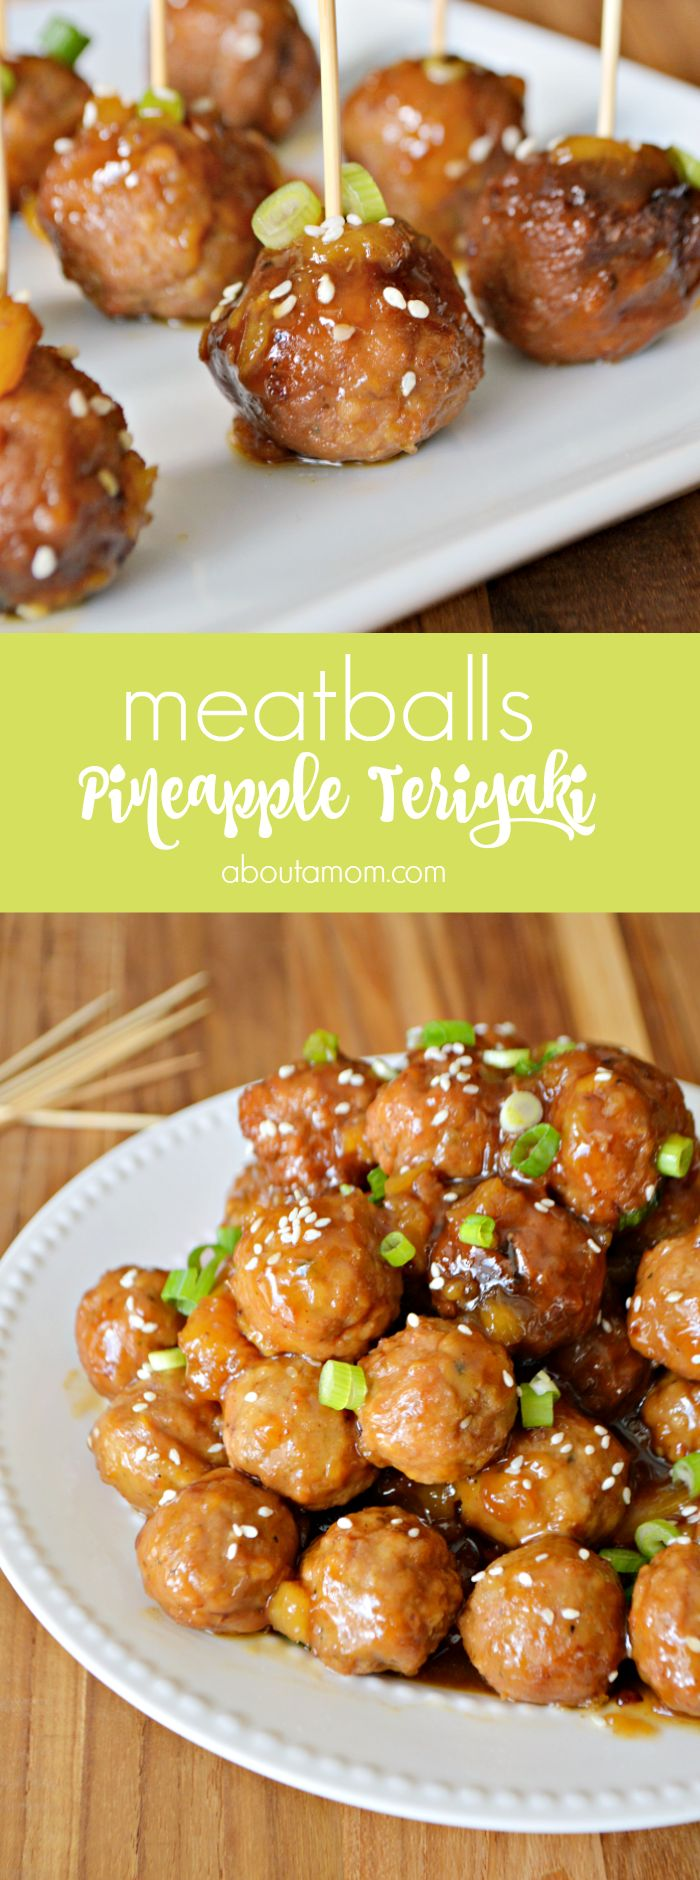 These simple-to-make slow cooker Pineapple Teriyaki Meatballs are incredibly delicious, and the perfect meatball appetizer for game day or anytime. #ad